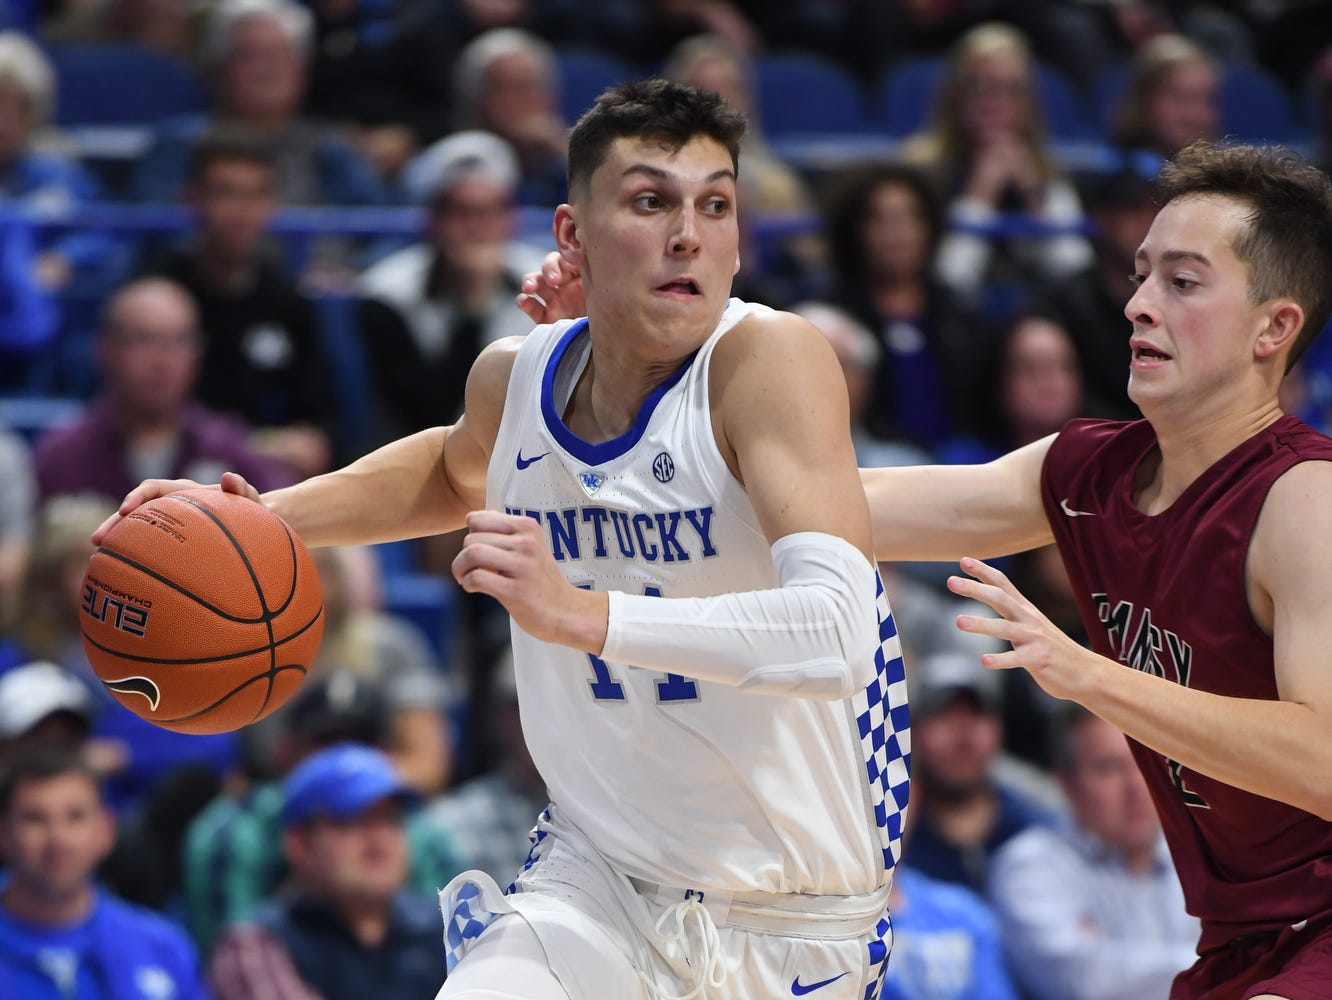 Tyler Herro drives during the University of Kentucky basketball game against Transylvania at Rupp Arena in Lexington on Friday, October 26, 2018.